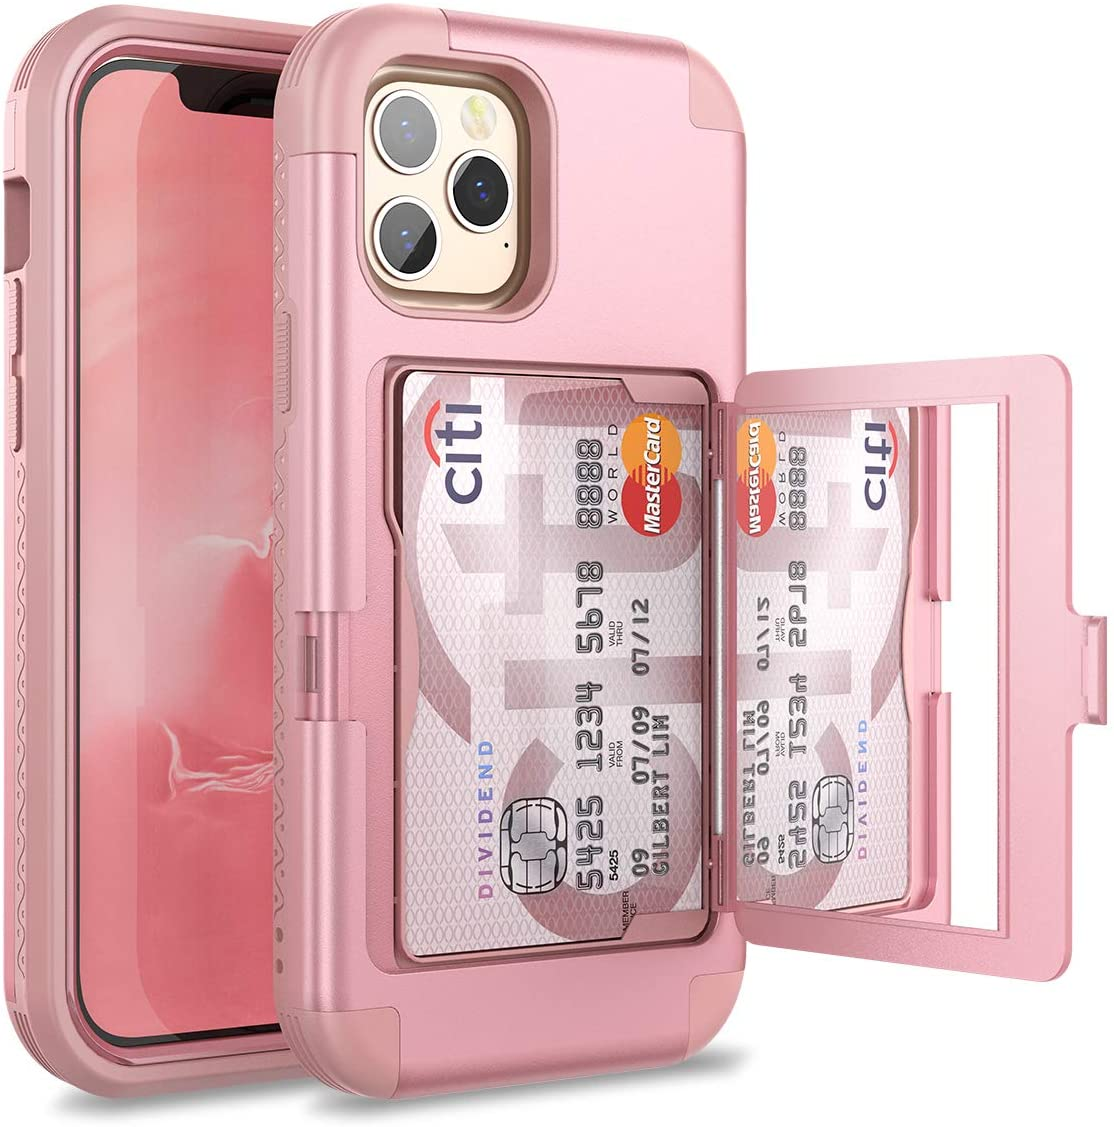 WeLoveCase for iPhone 12 Pro Max Wallet Case with Credit Card Holder & Hidden Mirror, Three Layer Shockproof Heavy Duty Protection Cover Protective Case for iPhone 12 Pro Max - 6.7inch Rose Gold